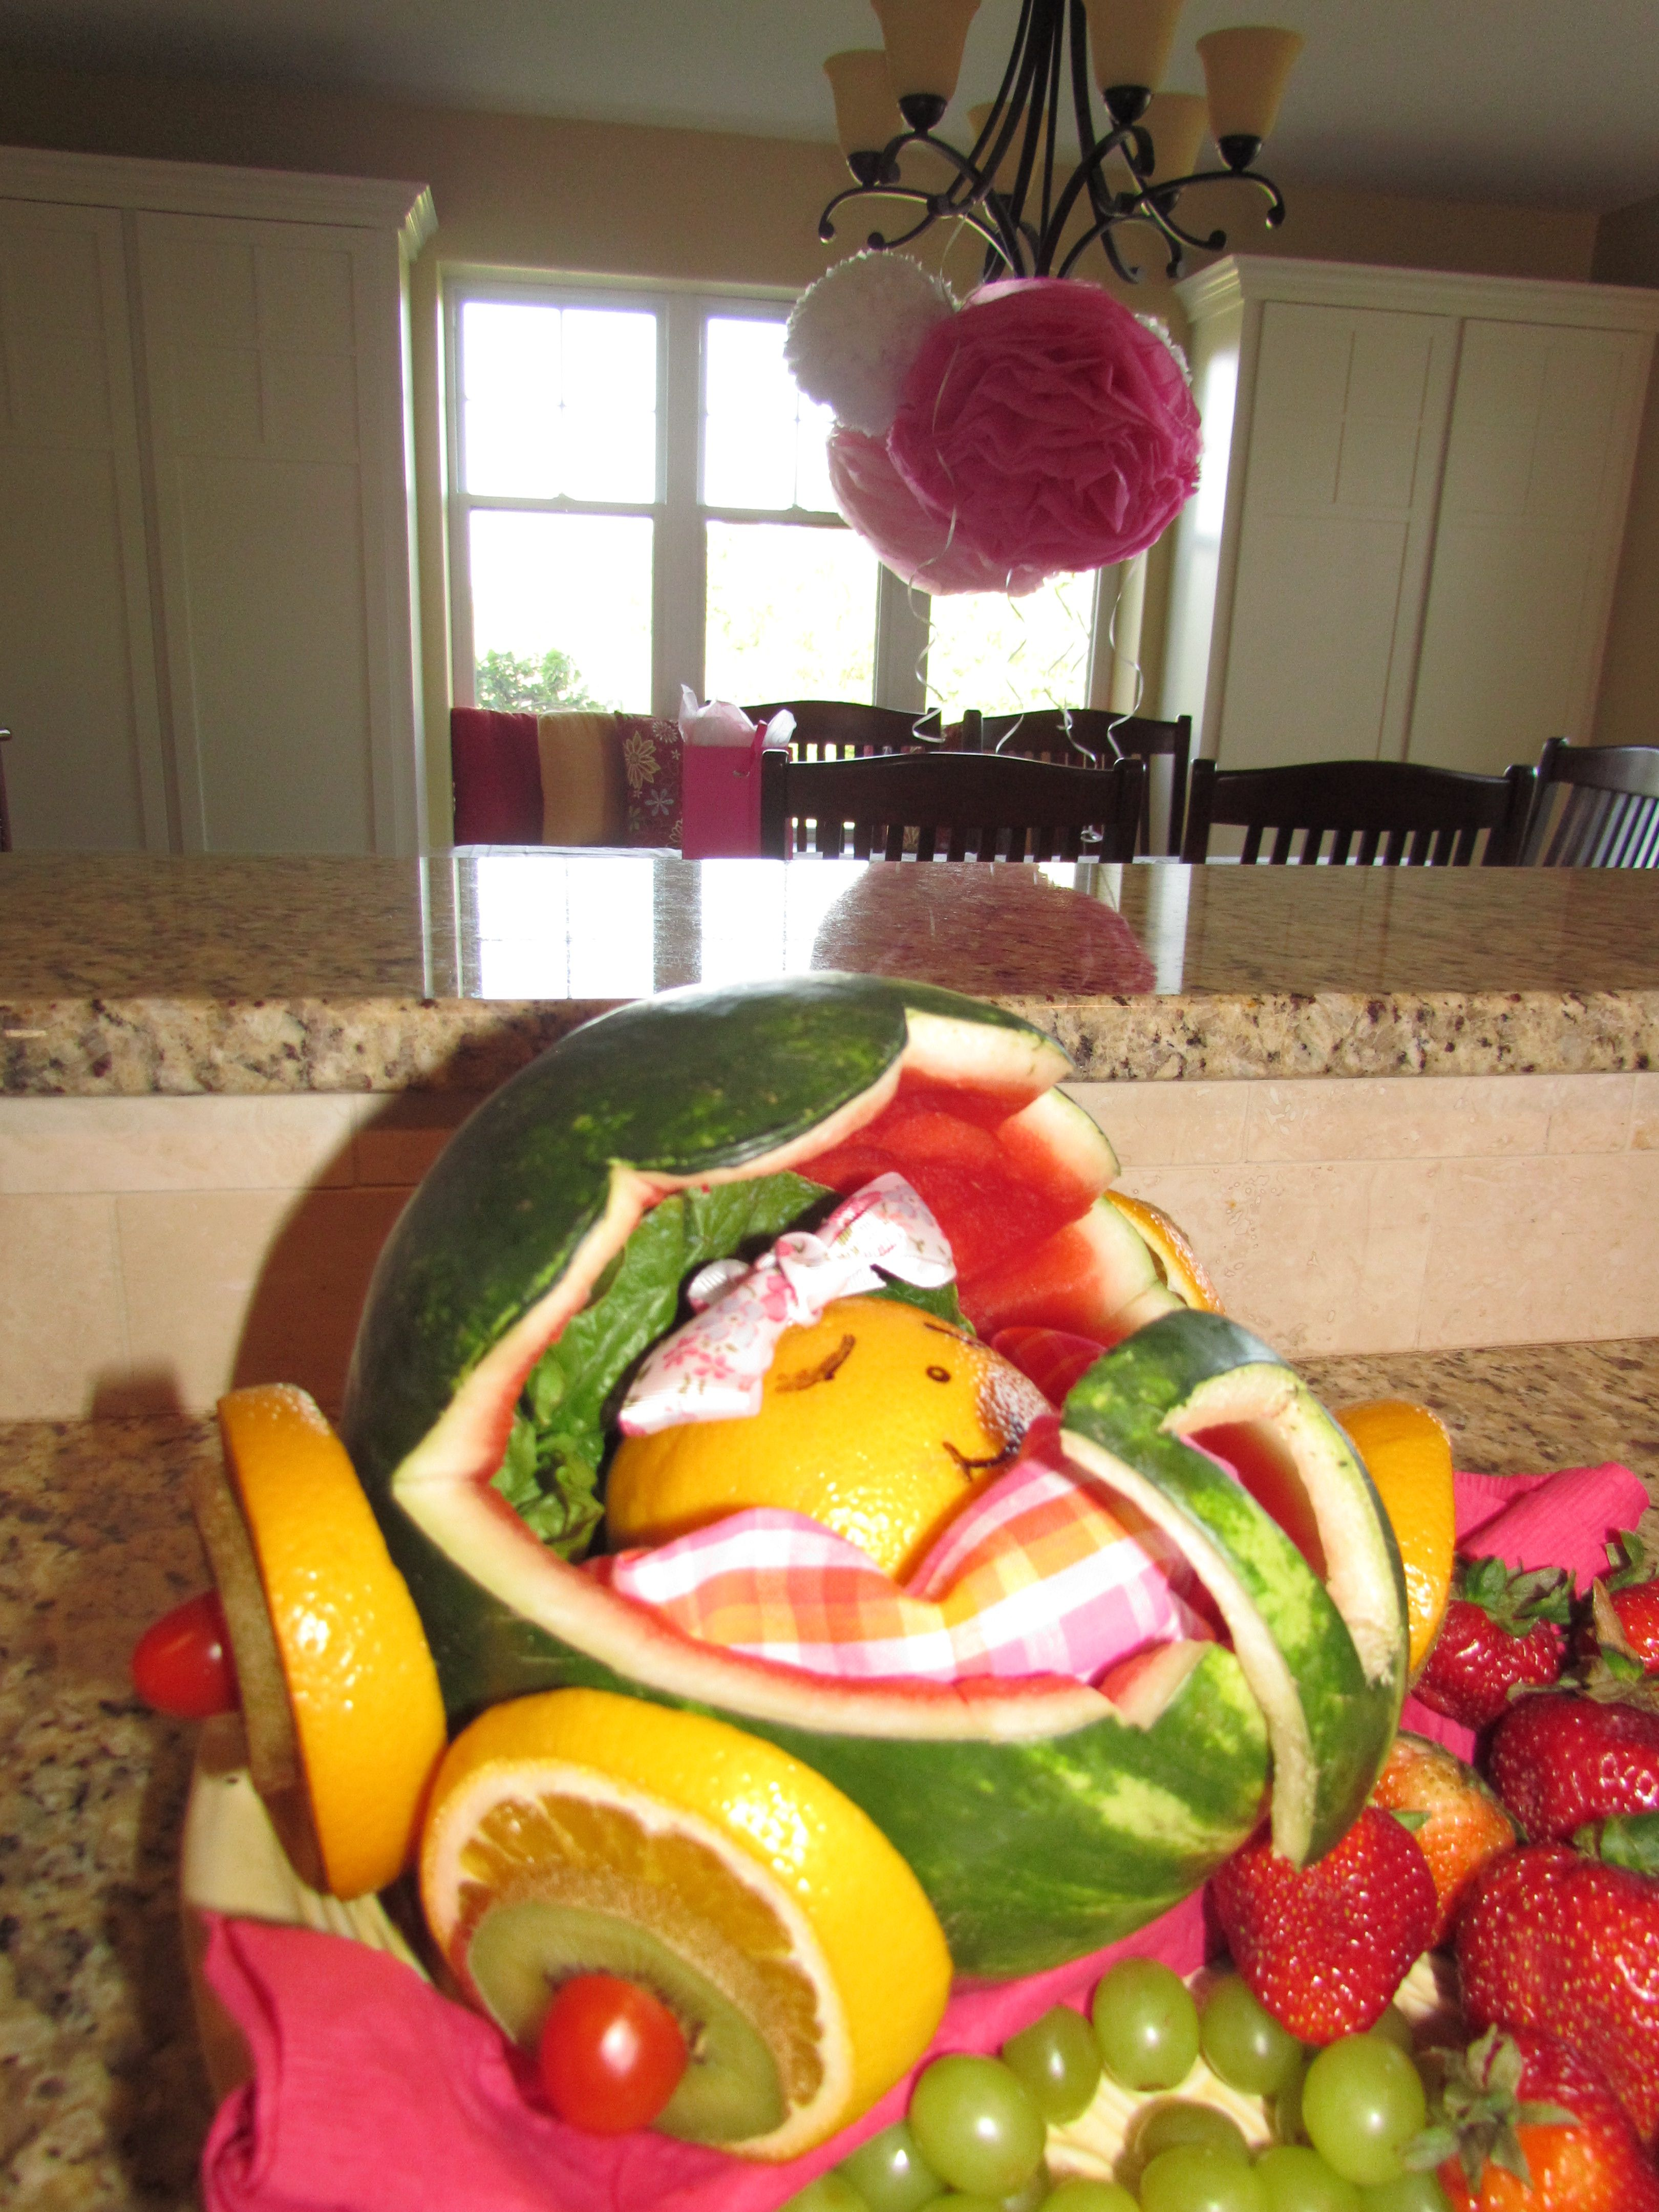 Baby Shower Decoration Watermelon Baby Carriage for Fruit Tray